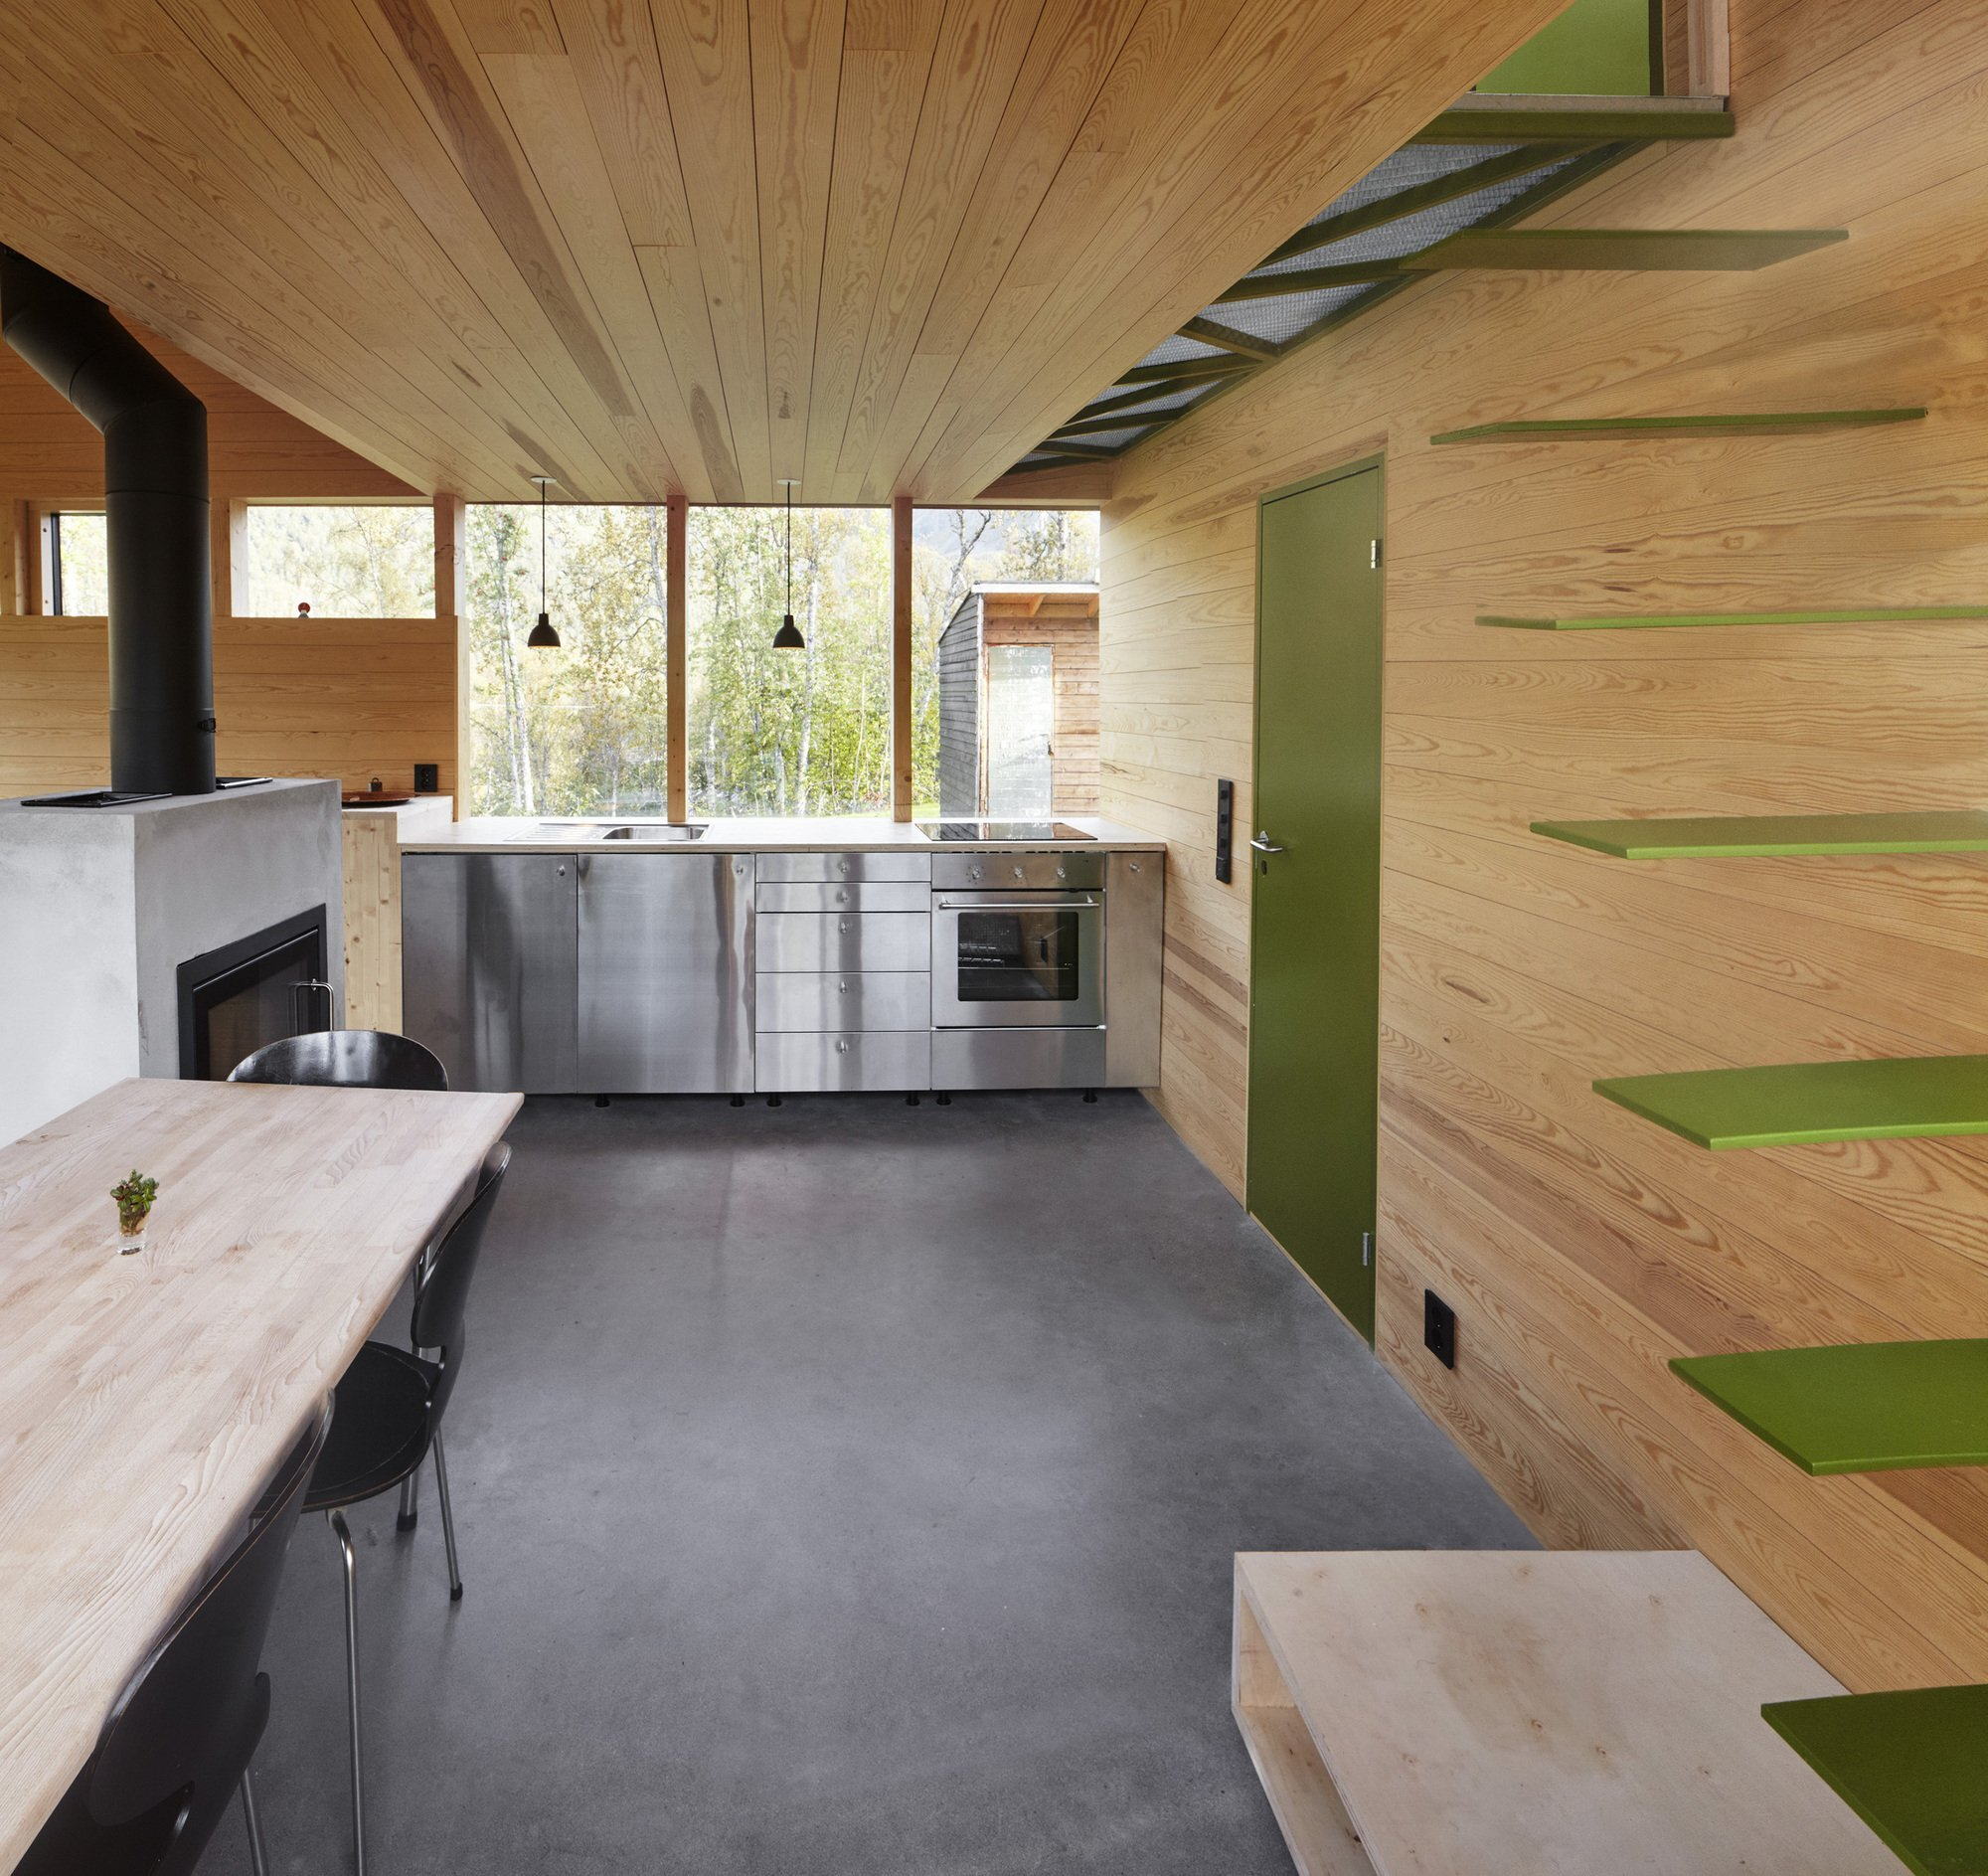 Cabin Laksvatn - Hamran Johansen Arkitekter - Norway - Kitchen - Humble Homes